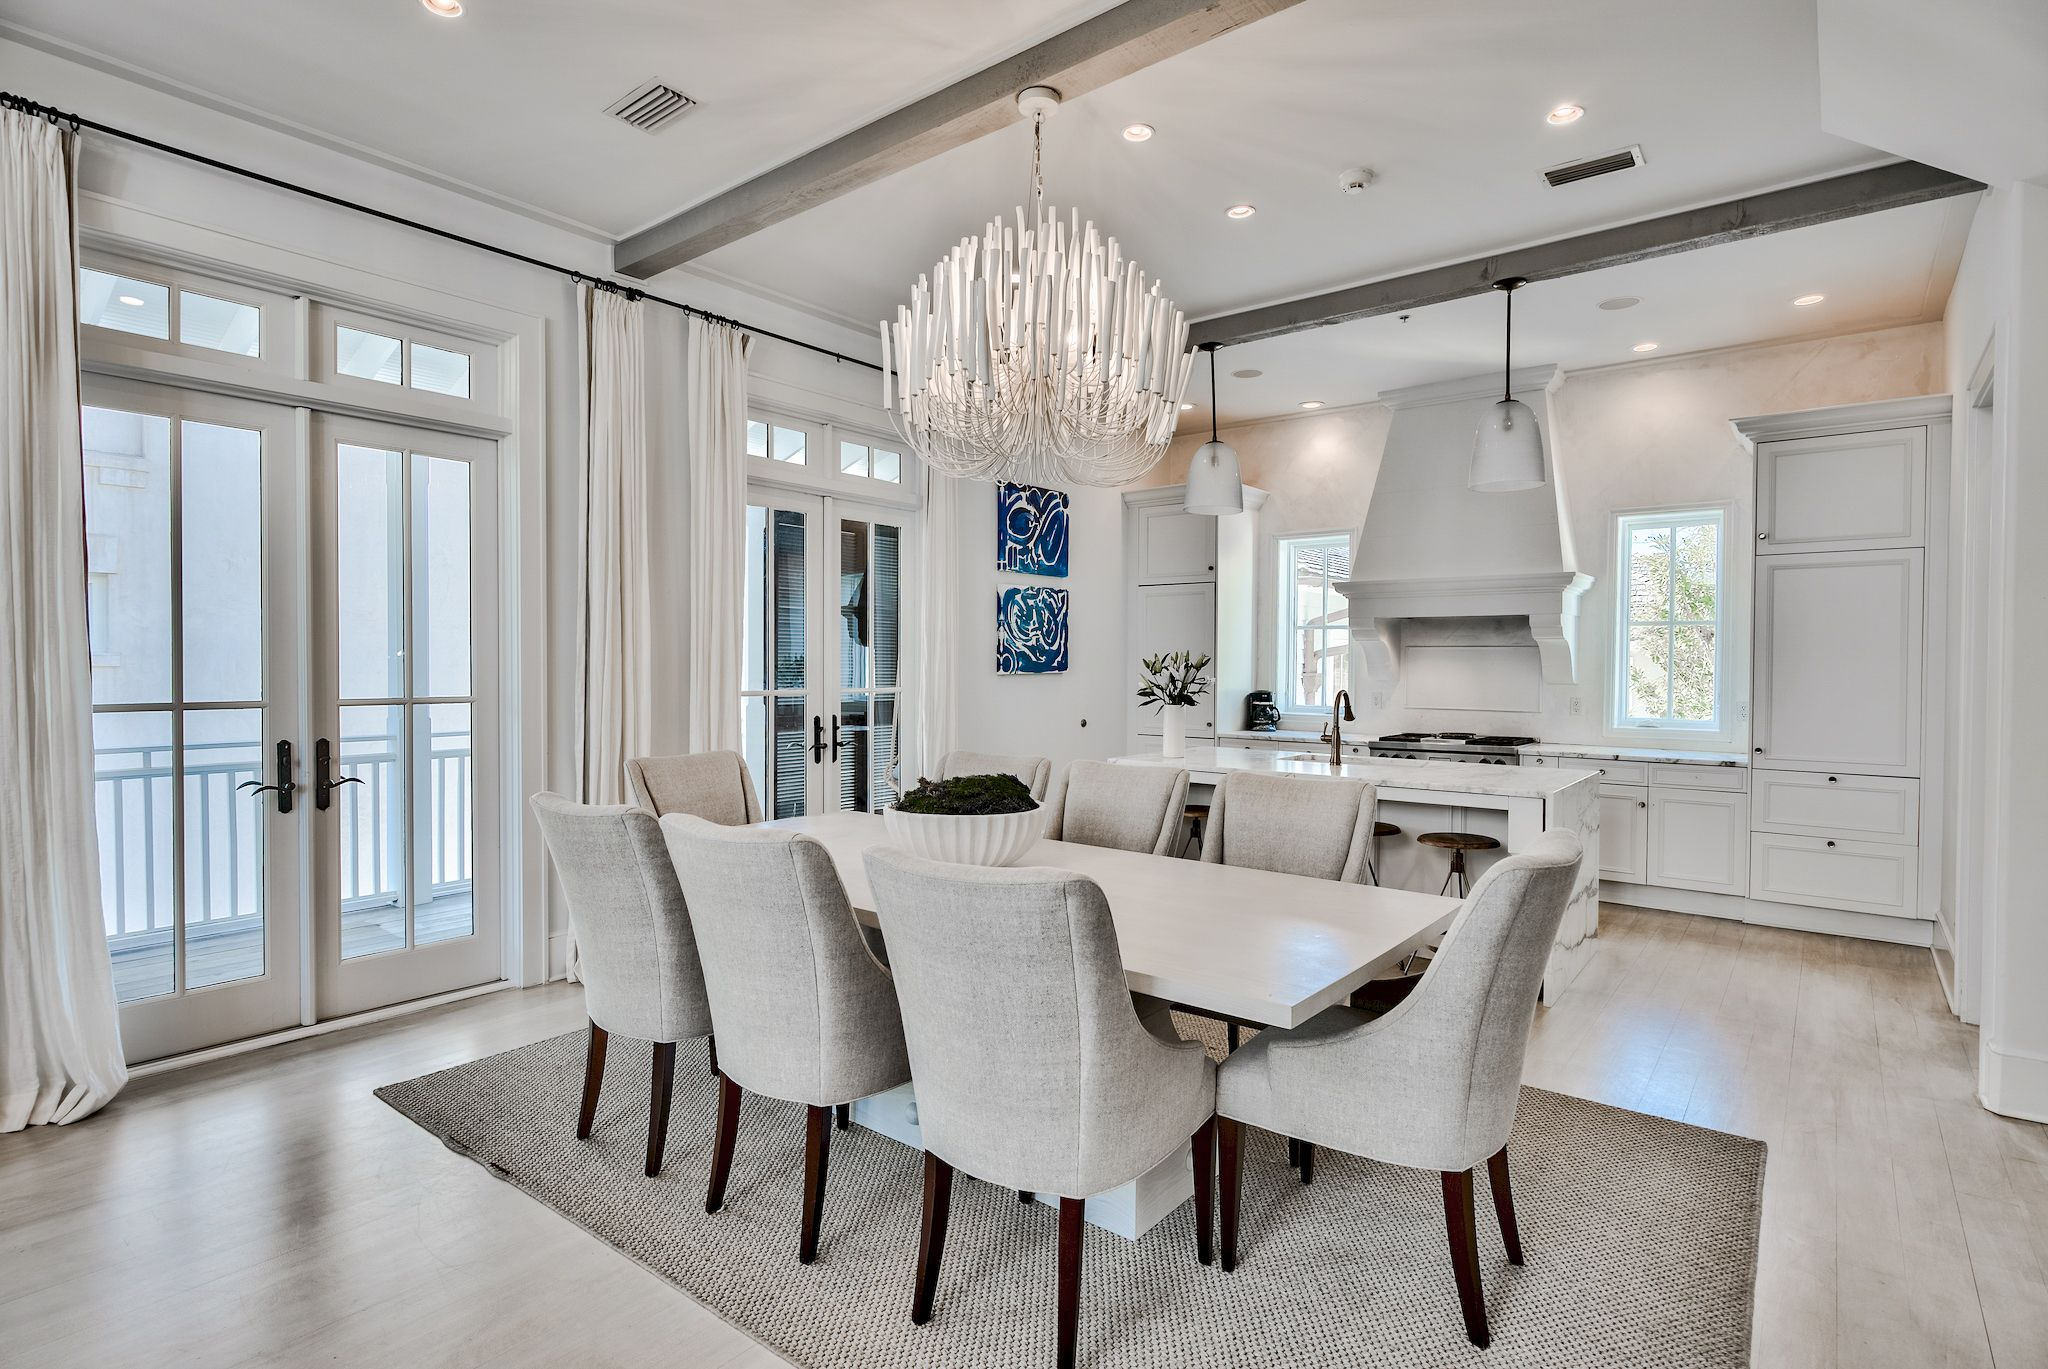 Luxury And Modern Dining Room Beautiful Dining Rooms Modern Dining Room Luxury Dining Room Beautiful dining rooms houzz